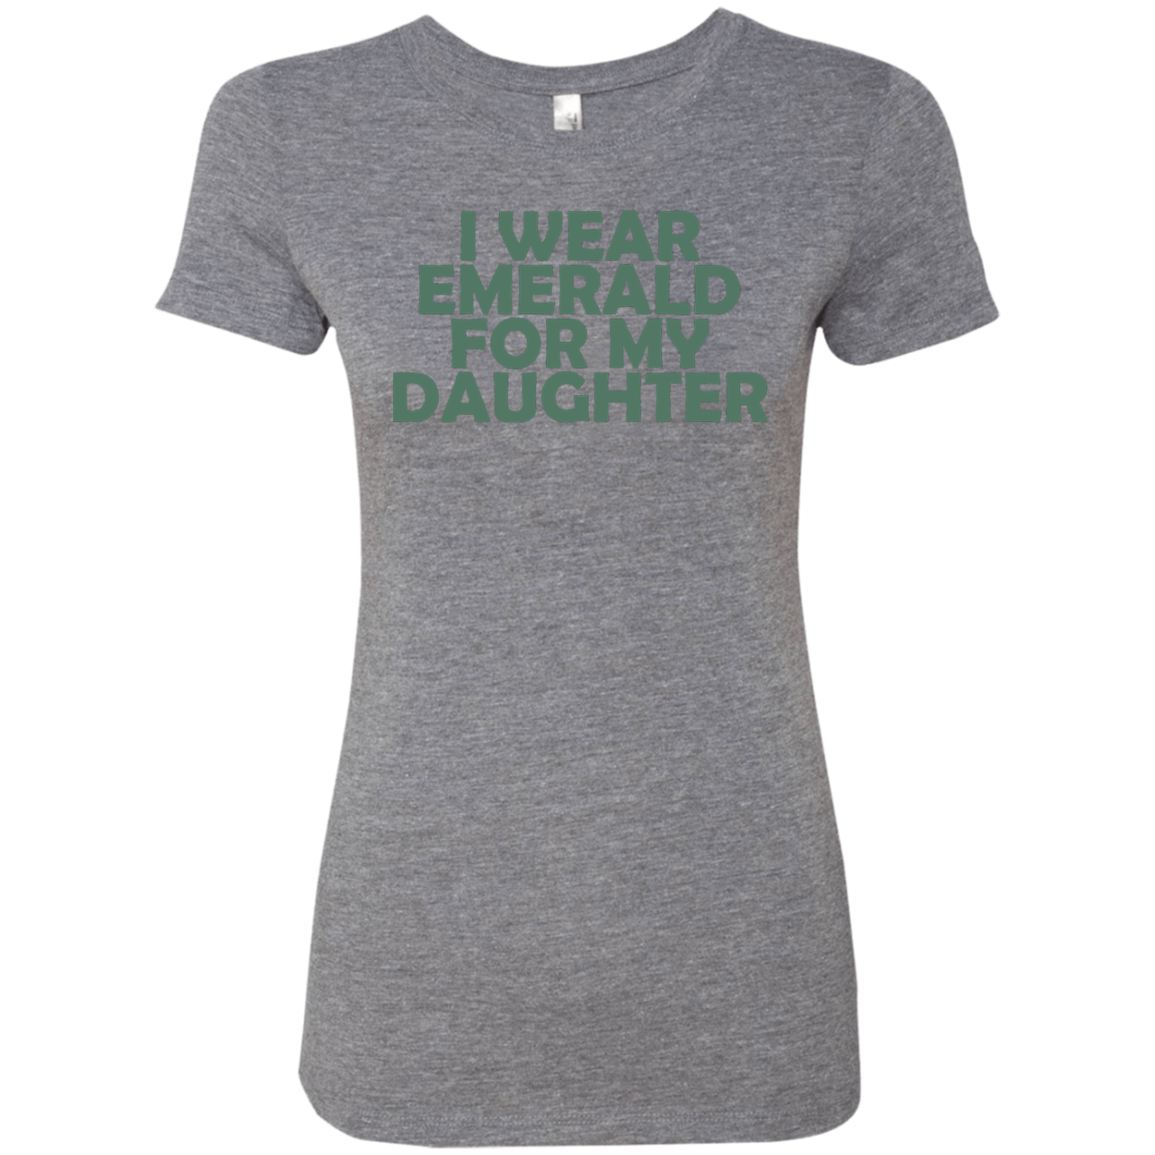 I Wear Emerald For My Daughter Women's Classic Tee